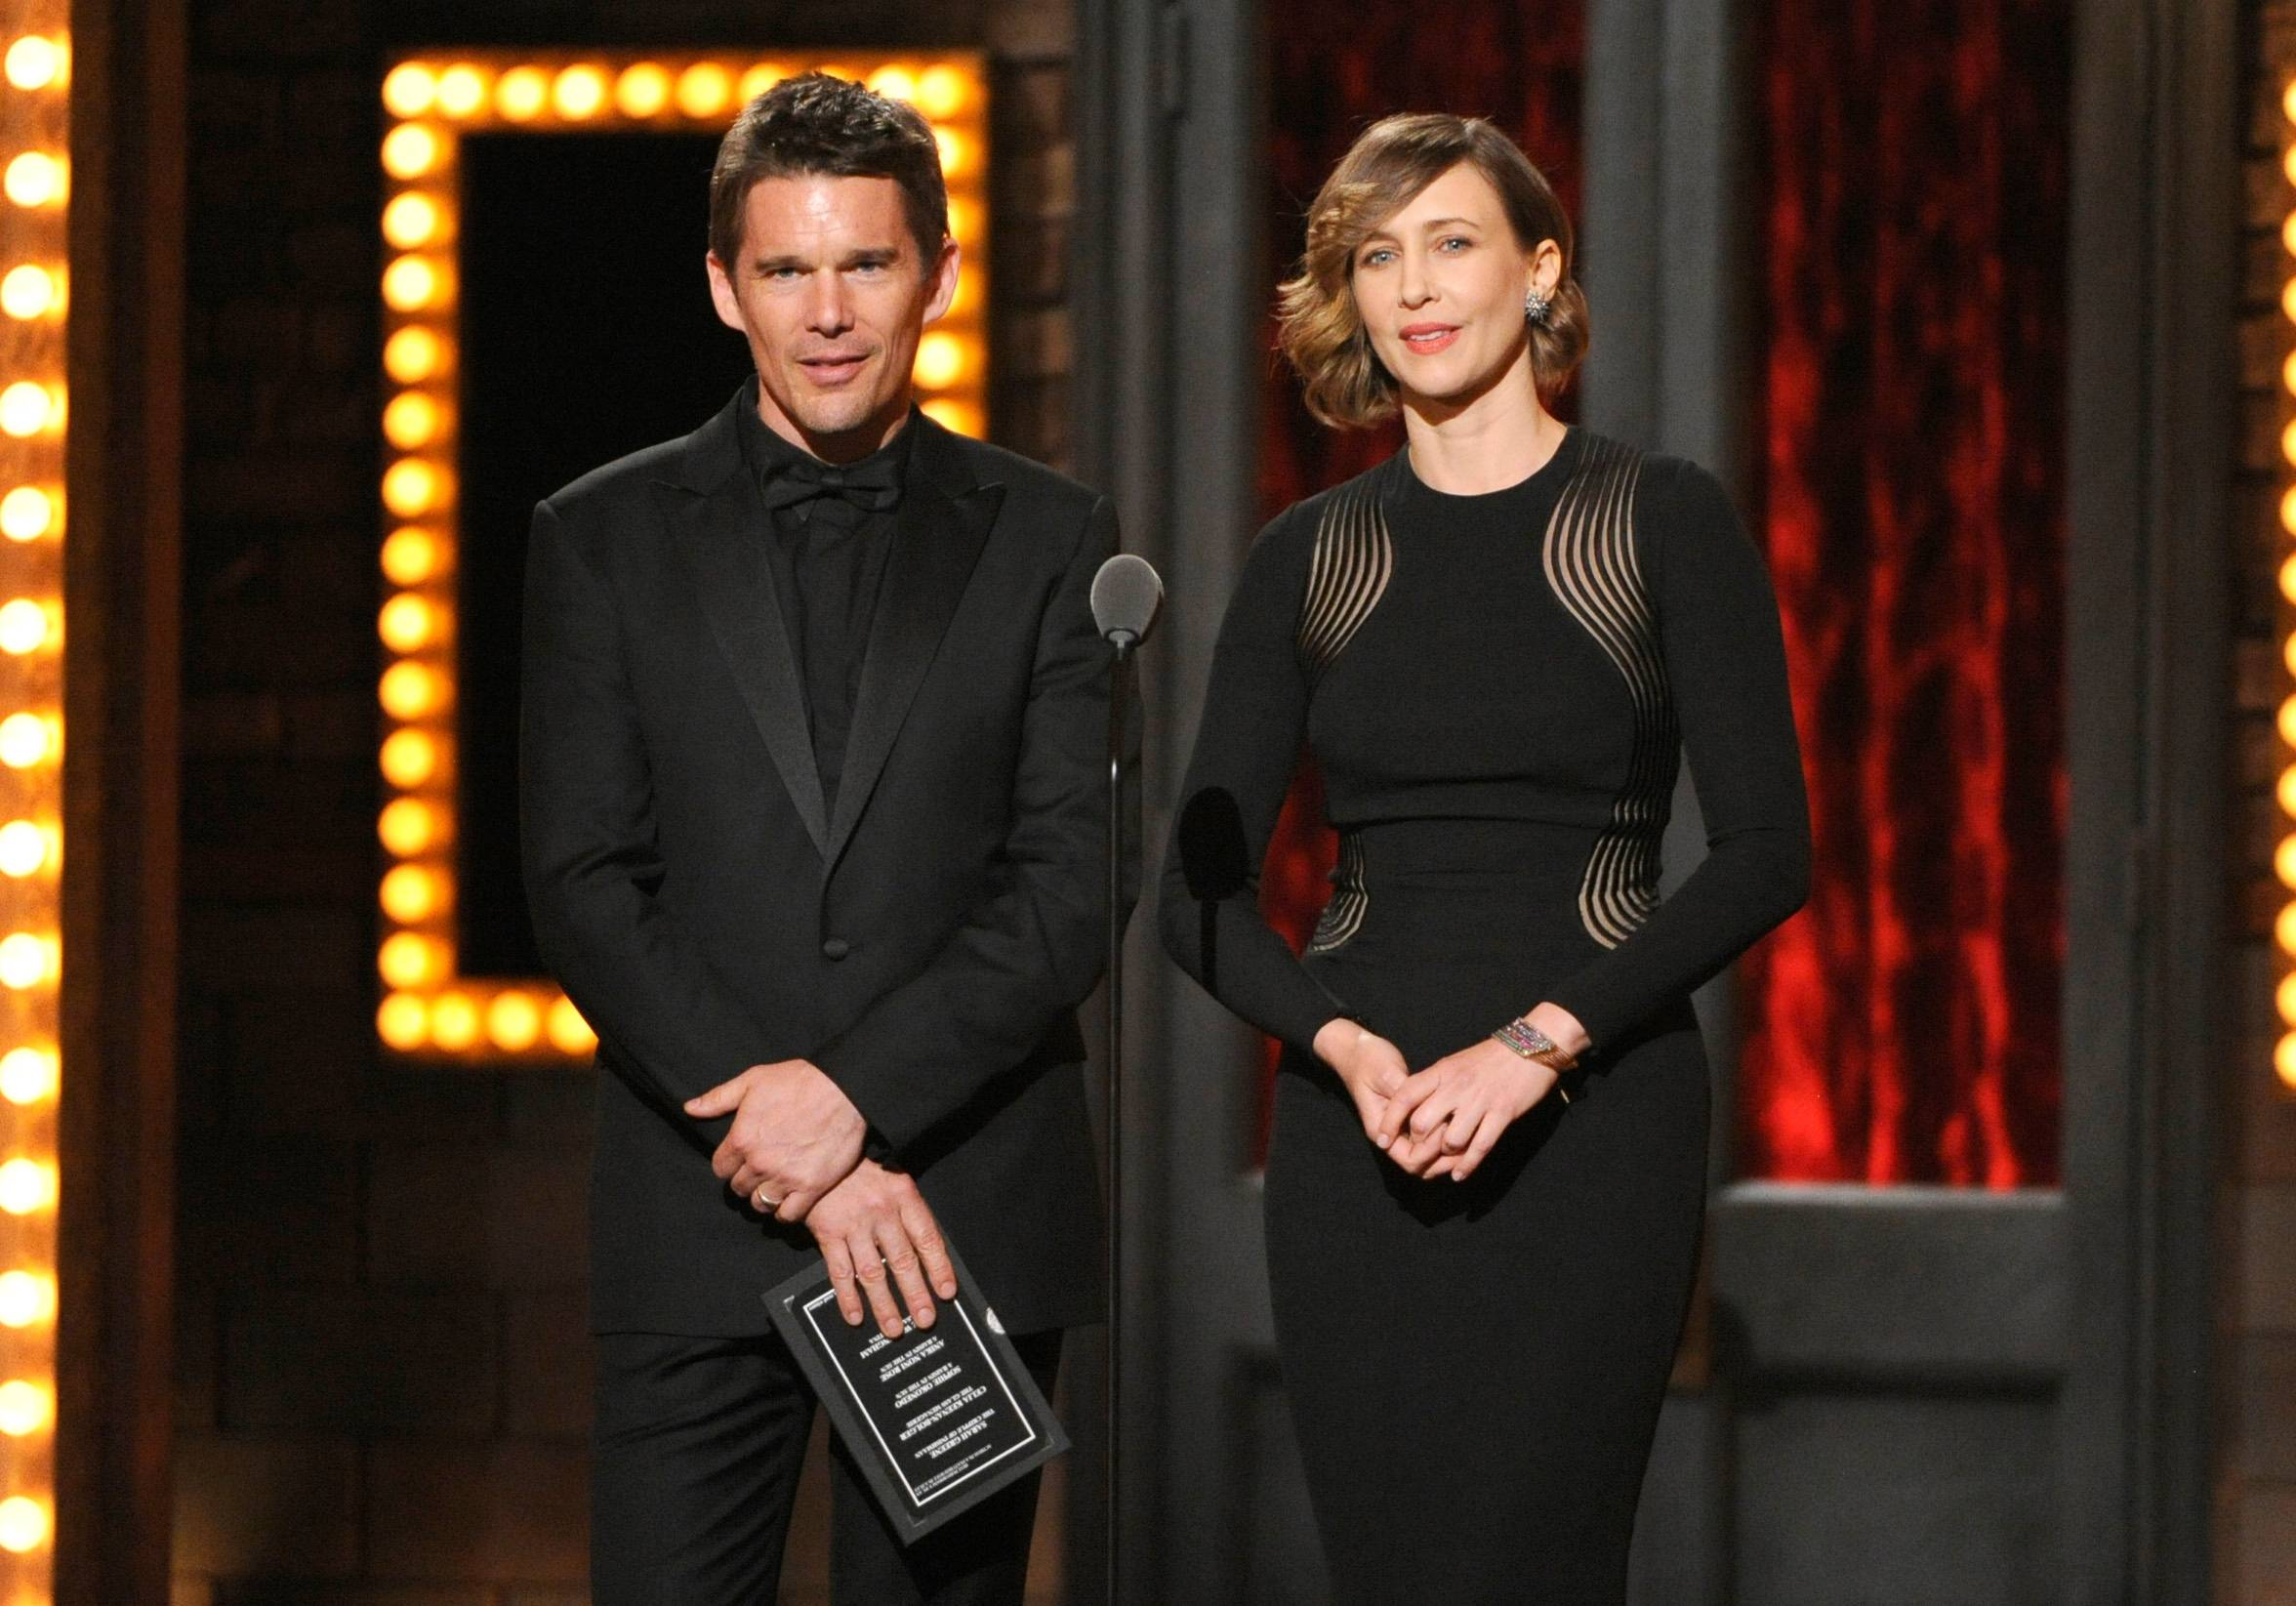 Ethan Hawke and Vera Farmiga present the award for best performance by an actress in a featured role in a play on stage at the 68th annual Tony Awards.